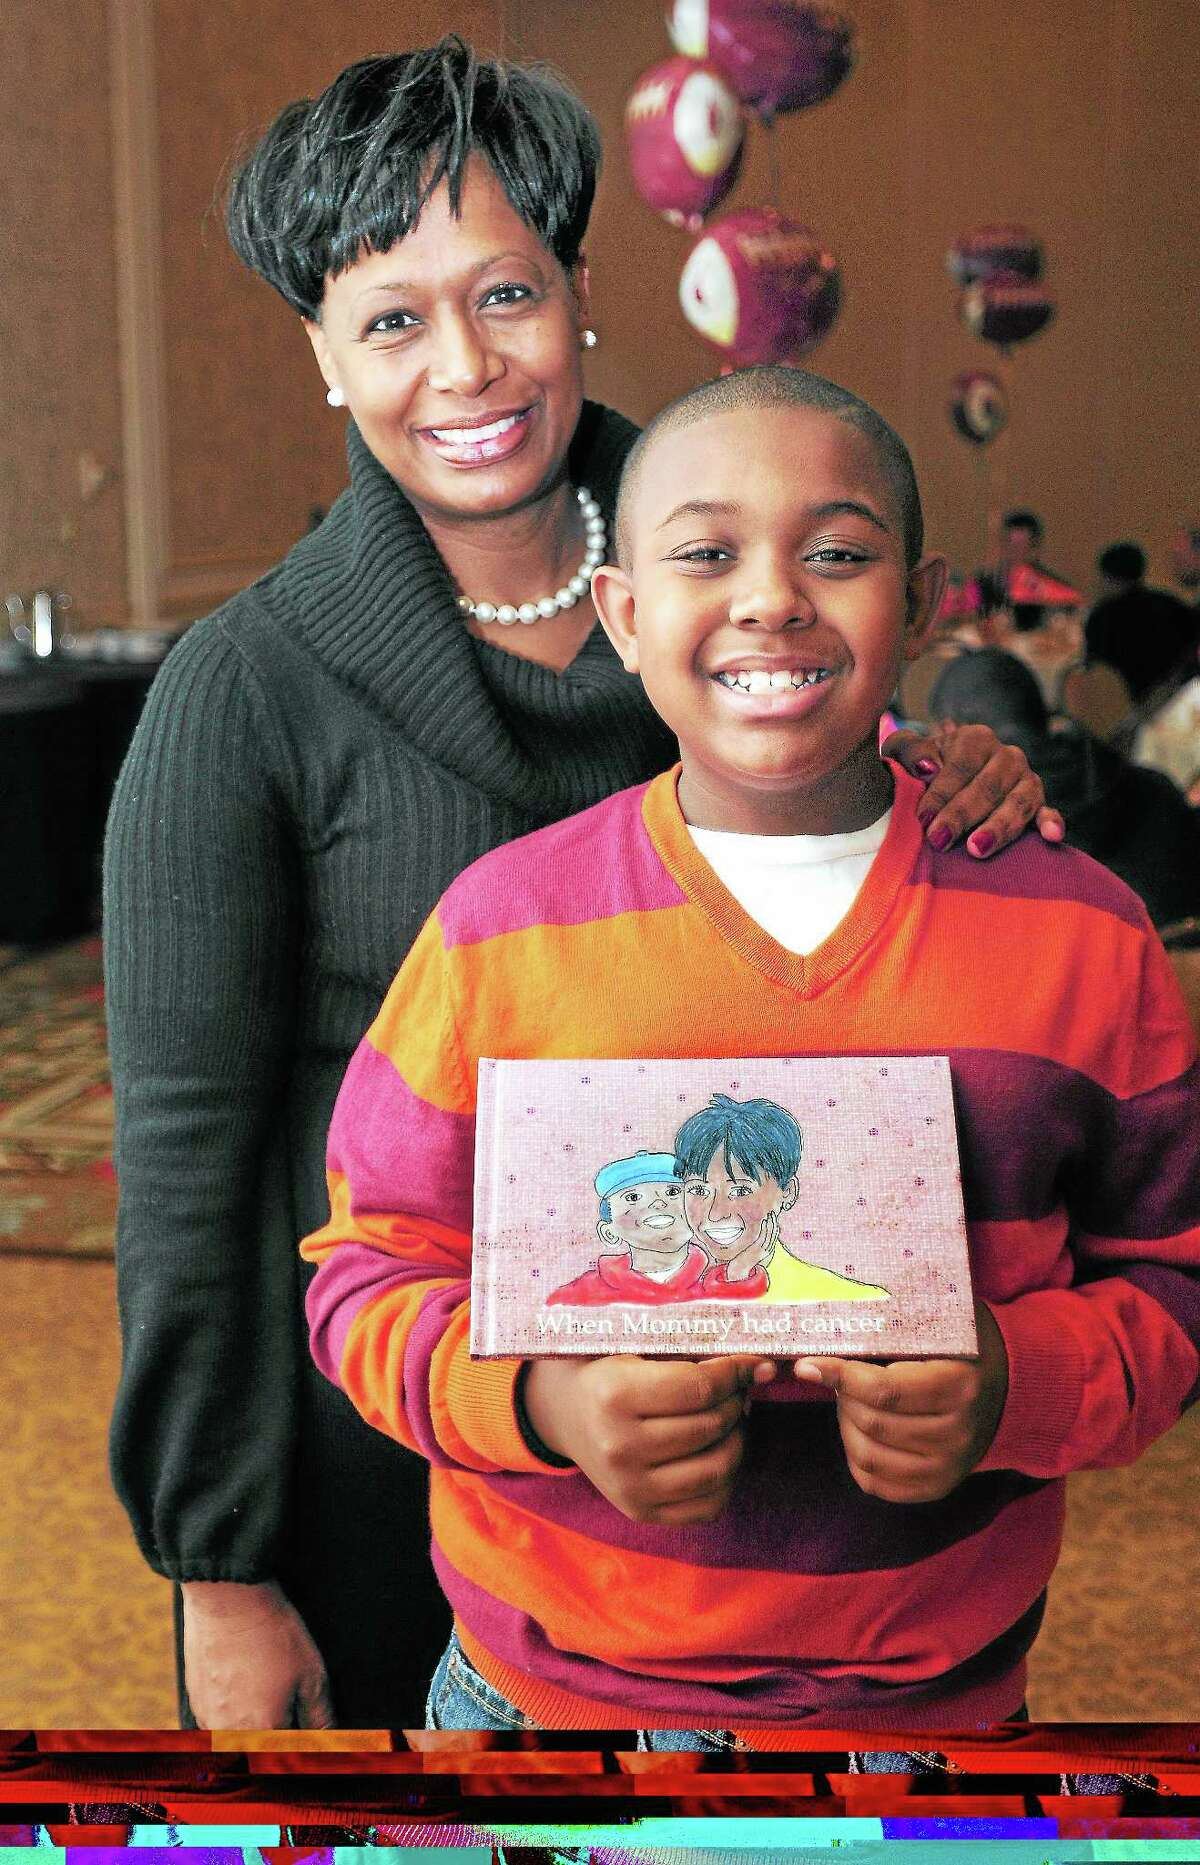 """Walter Camp Essay Contest winner James, """"Trey"""" Rawlins, III, is photographed with his mother, Veronica Marion, and the book he wrote, When Mommy had cancer, at the Walter Camp Alumni Brunch at the Omni New Haven Hotel at Yale on 1/11/2013.Photo by Arnold Gold/New Haven Register AG0480B"""